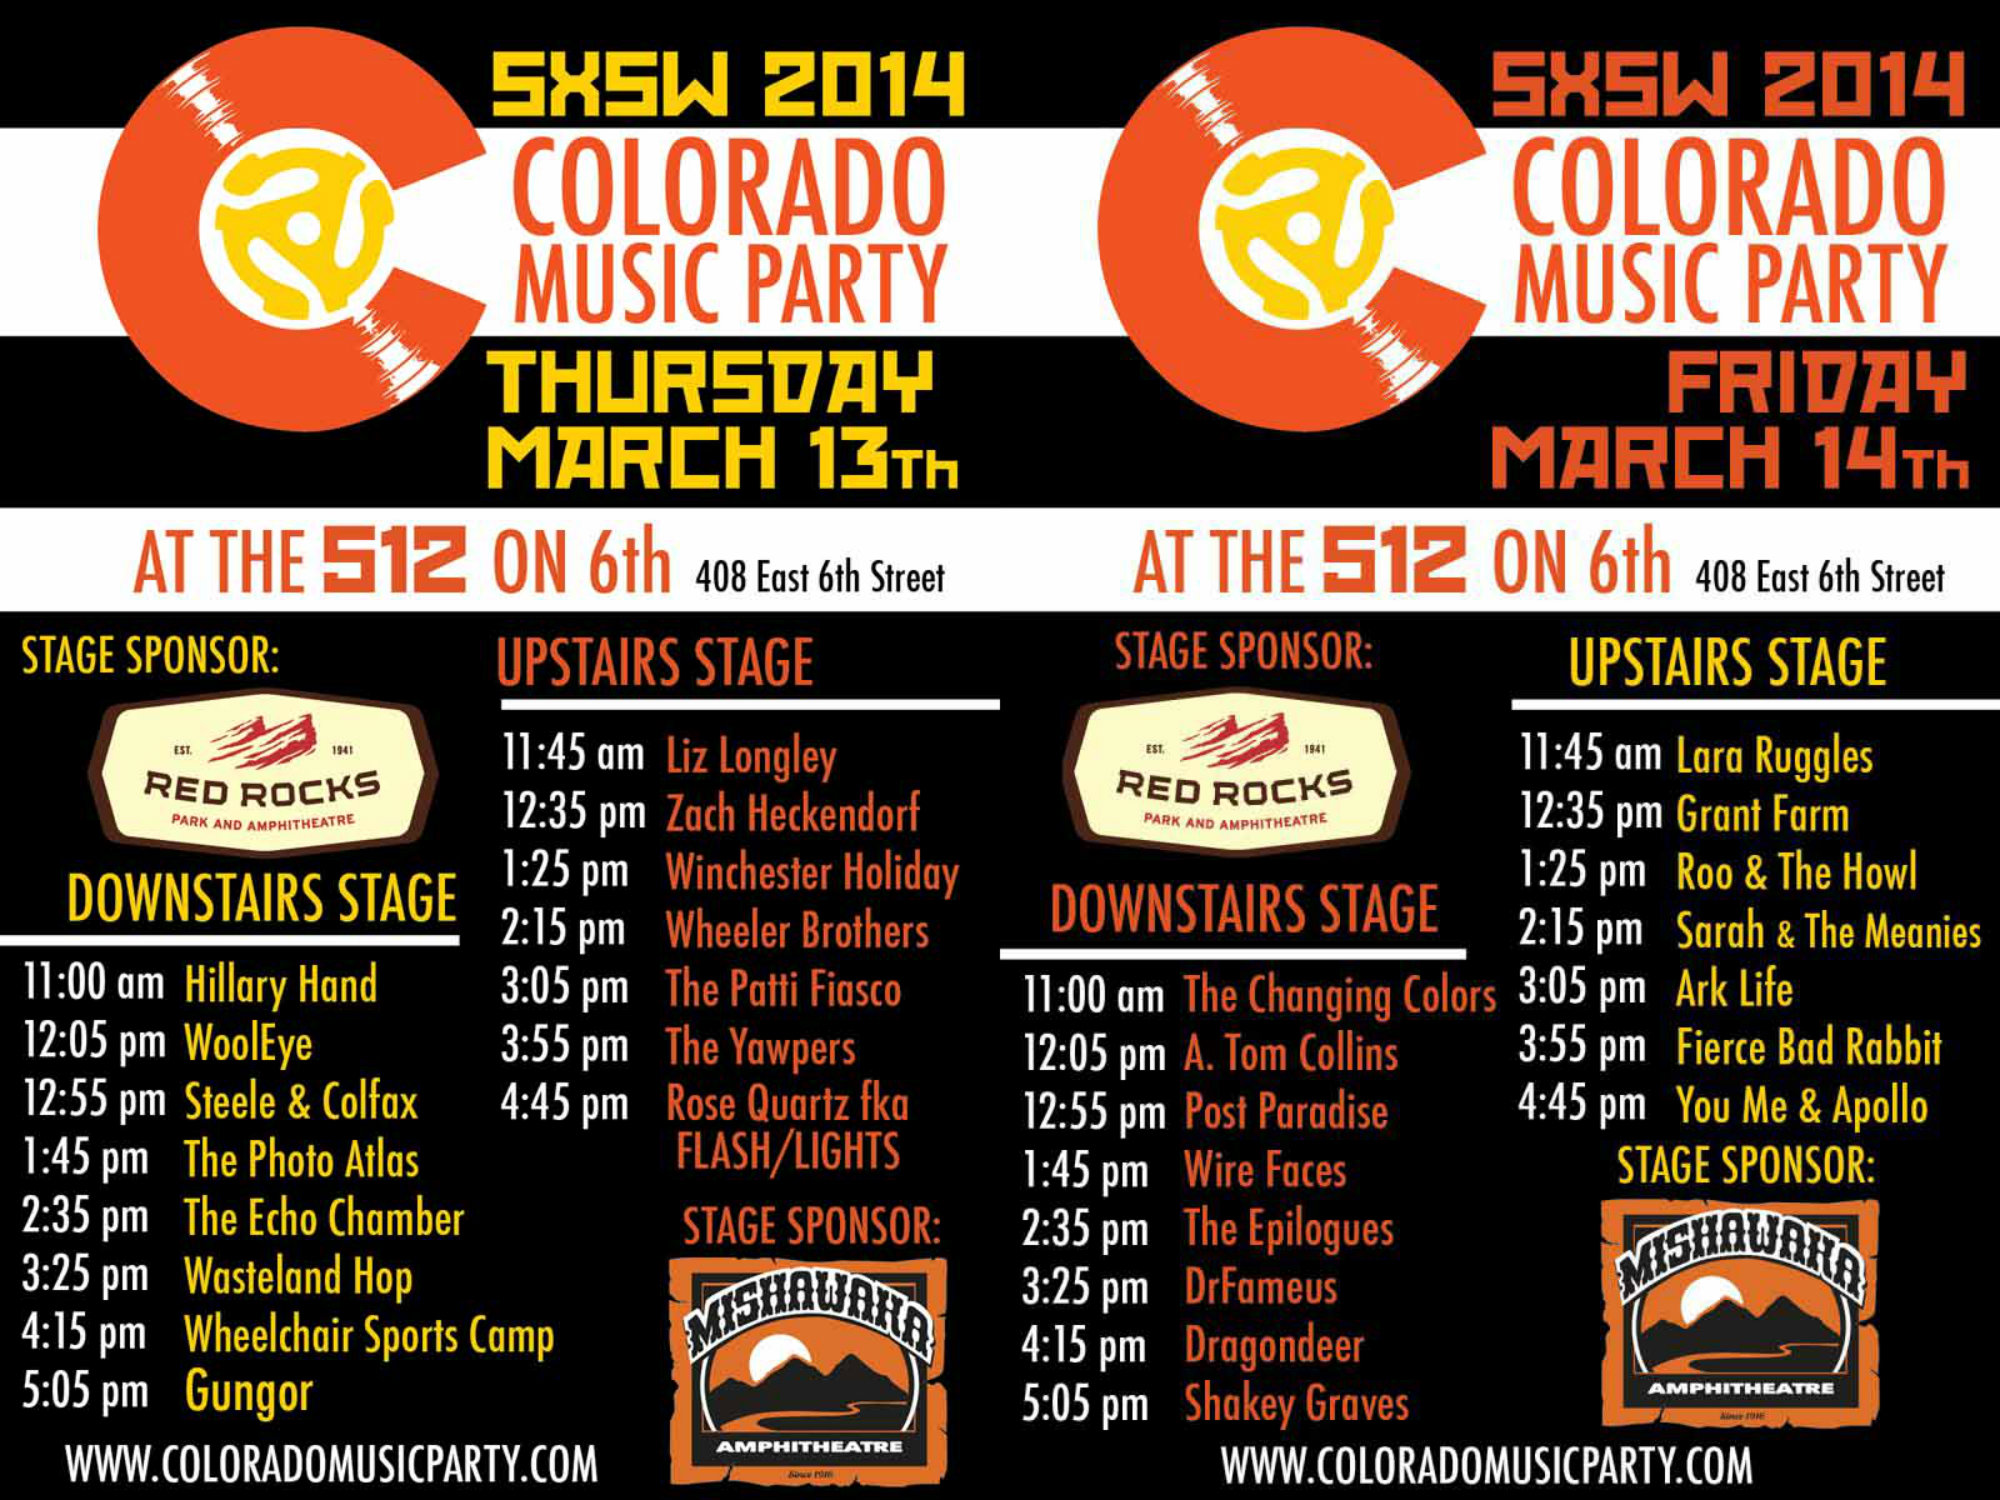 photo: CO Music party lineups